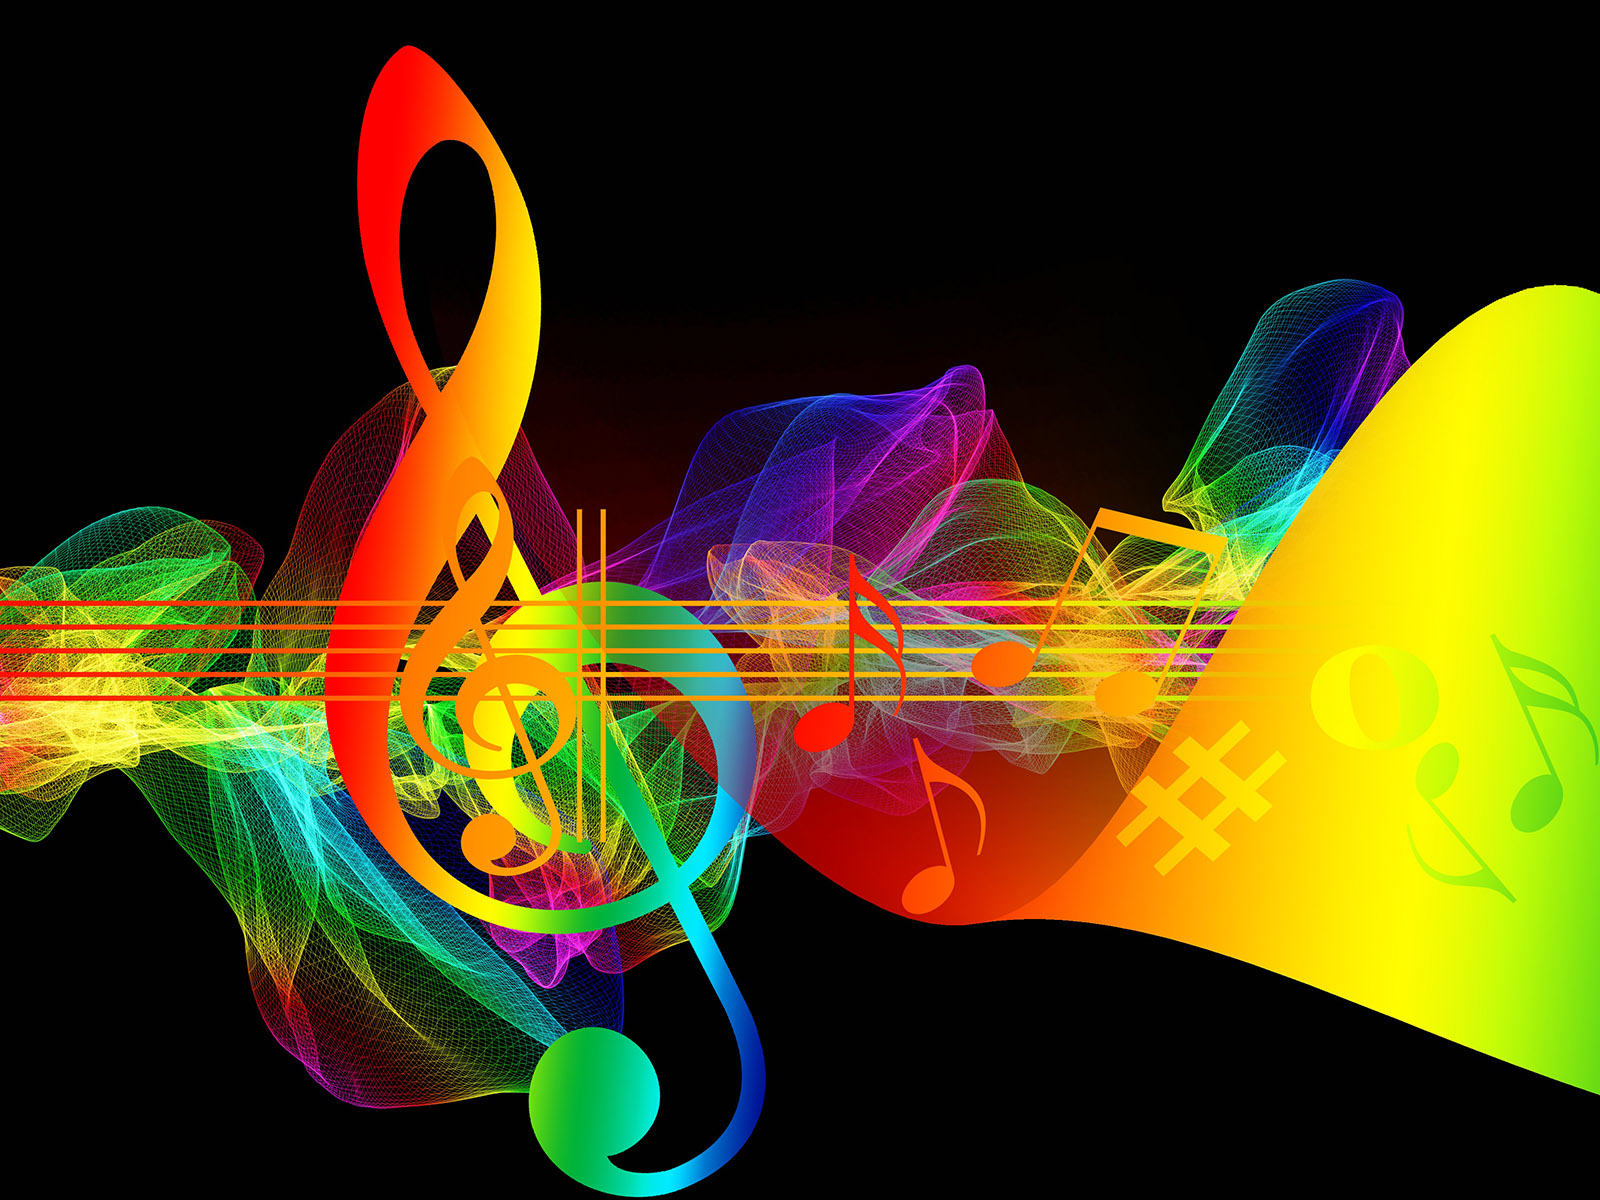 music ppt backgrounds - download free music powerpoint templates, Modern powerpoint